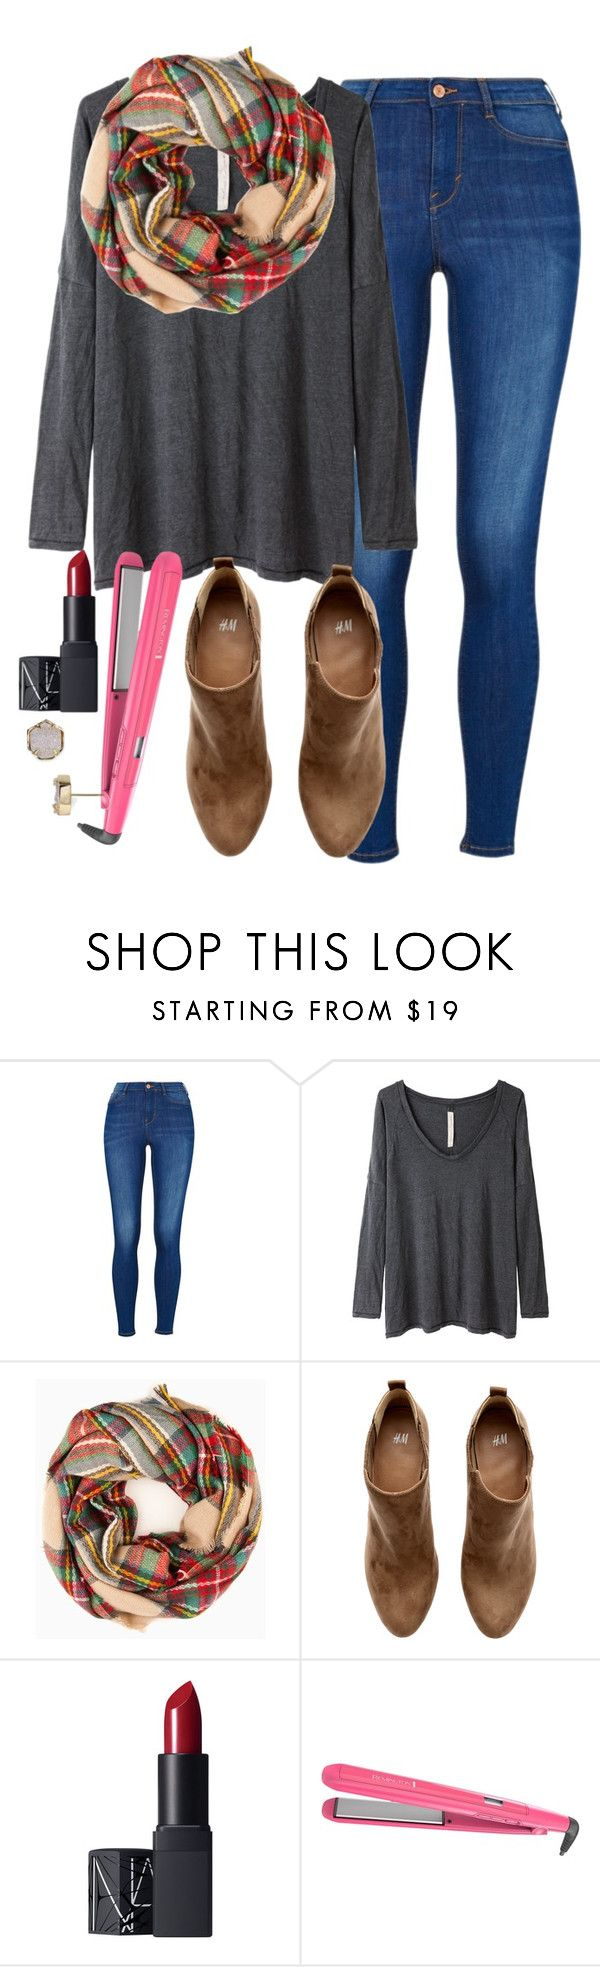 """""""//elizabeth"""" by southern-prep-gals ❤ liked on Polyvore featuring Raquel Allegra, H&M, NARS Cosmetics, Remington and Kendra Scott"""